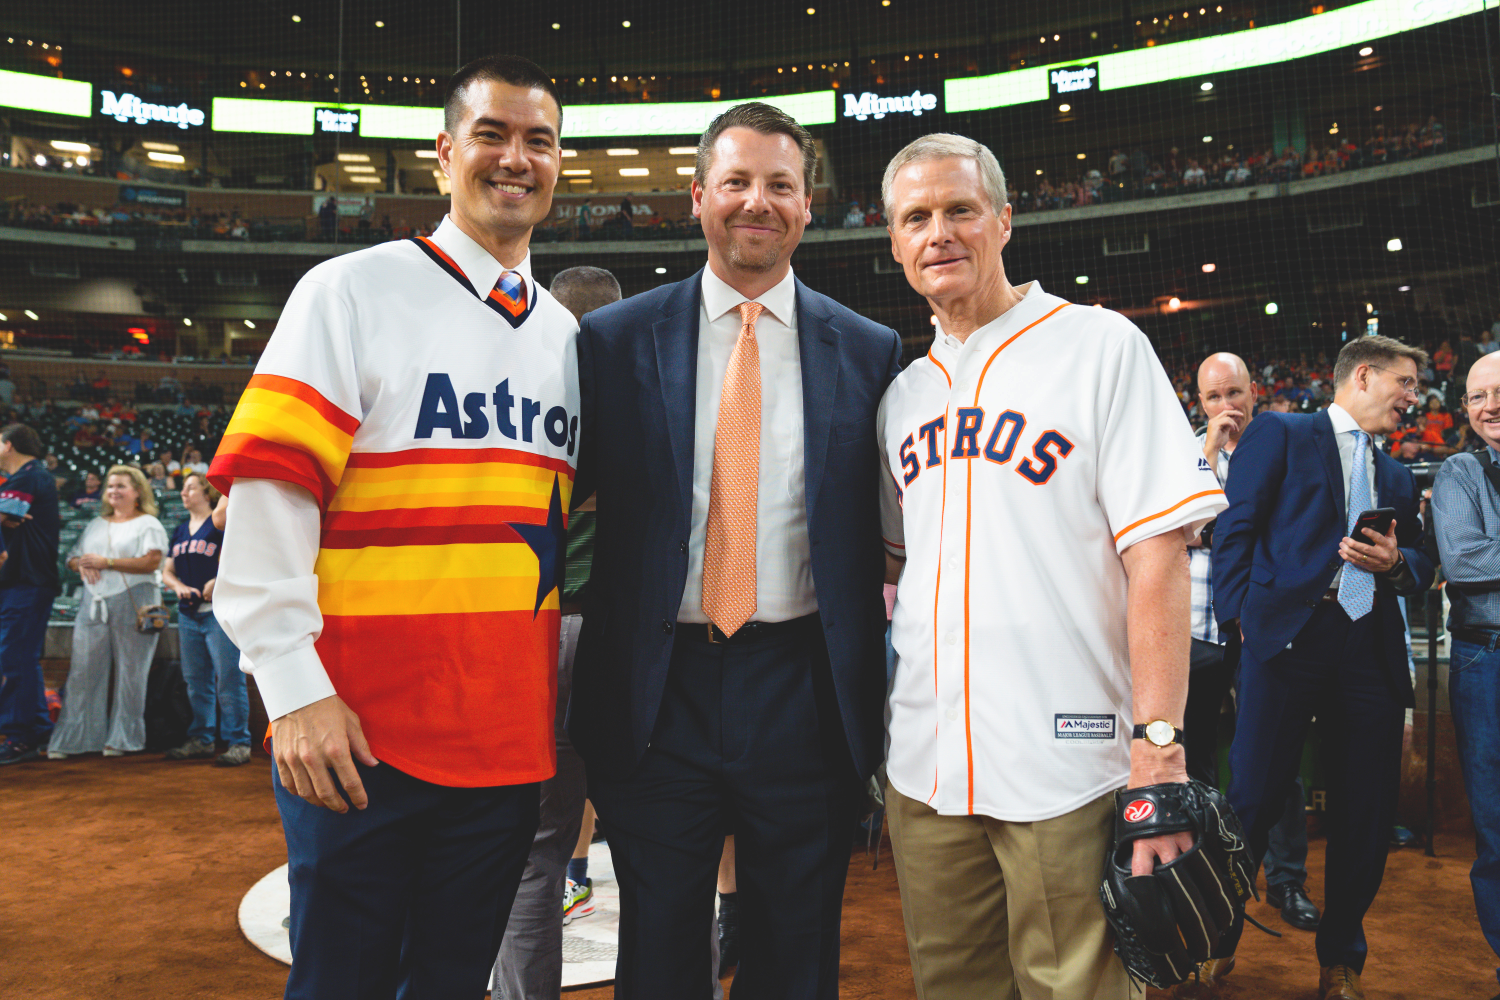 Astros' Senior Vice President of business operations, Marcel Braithwaite, flanked by President Jeremy Guthrie of the Texas Houston South Mission, left, and Elder David A. Bednar of the Quorum of the Twelve Apostles, right.